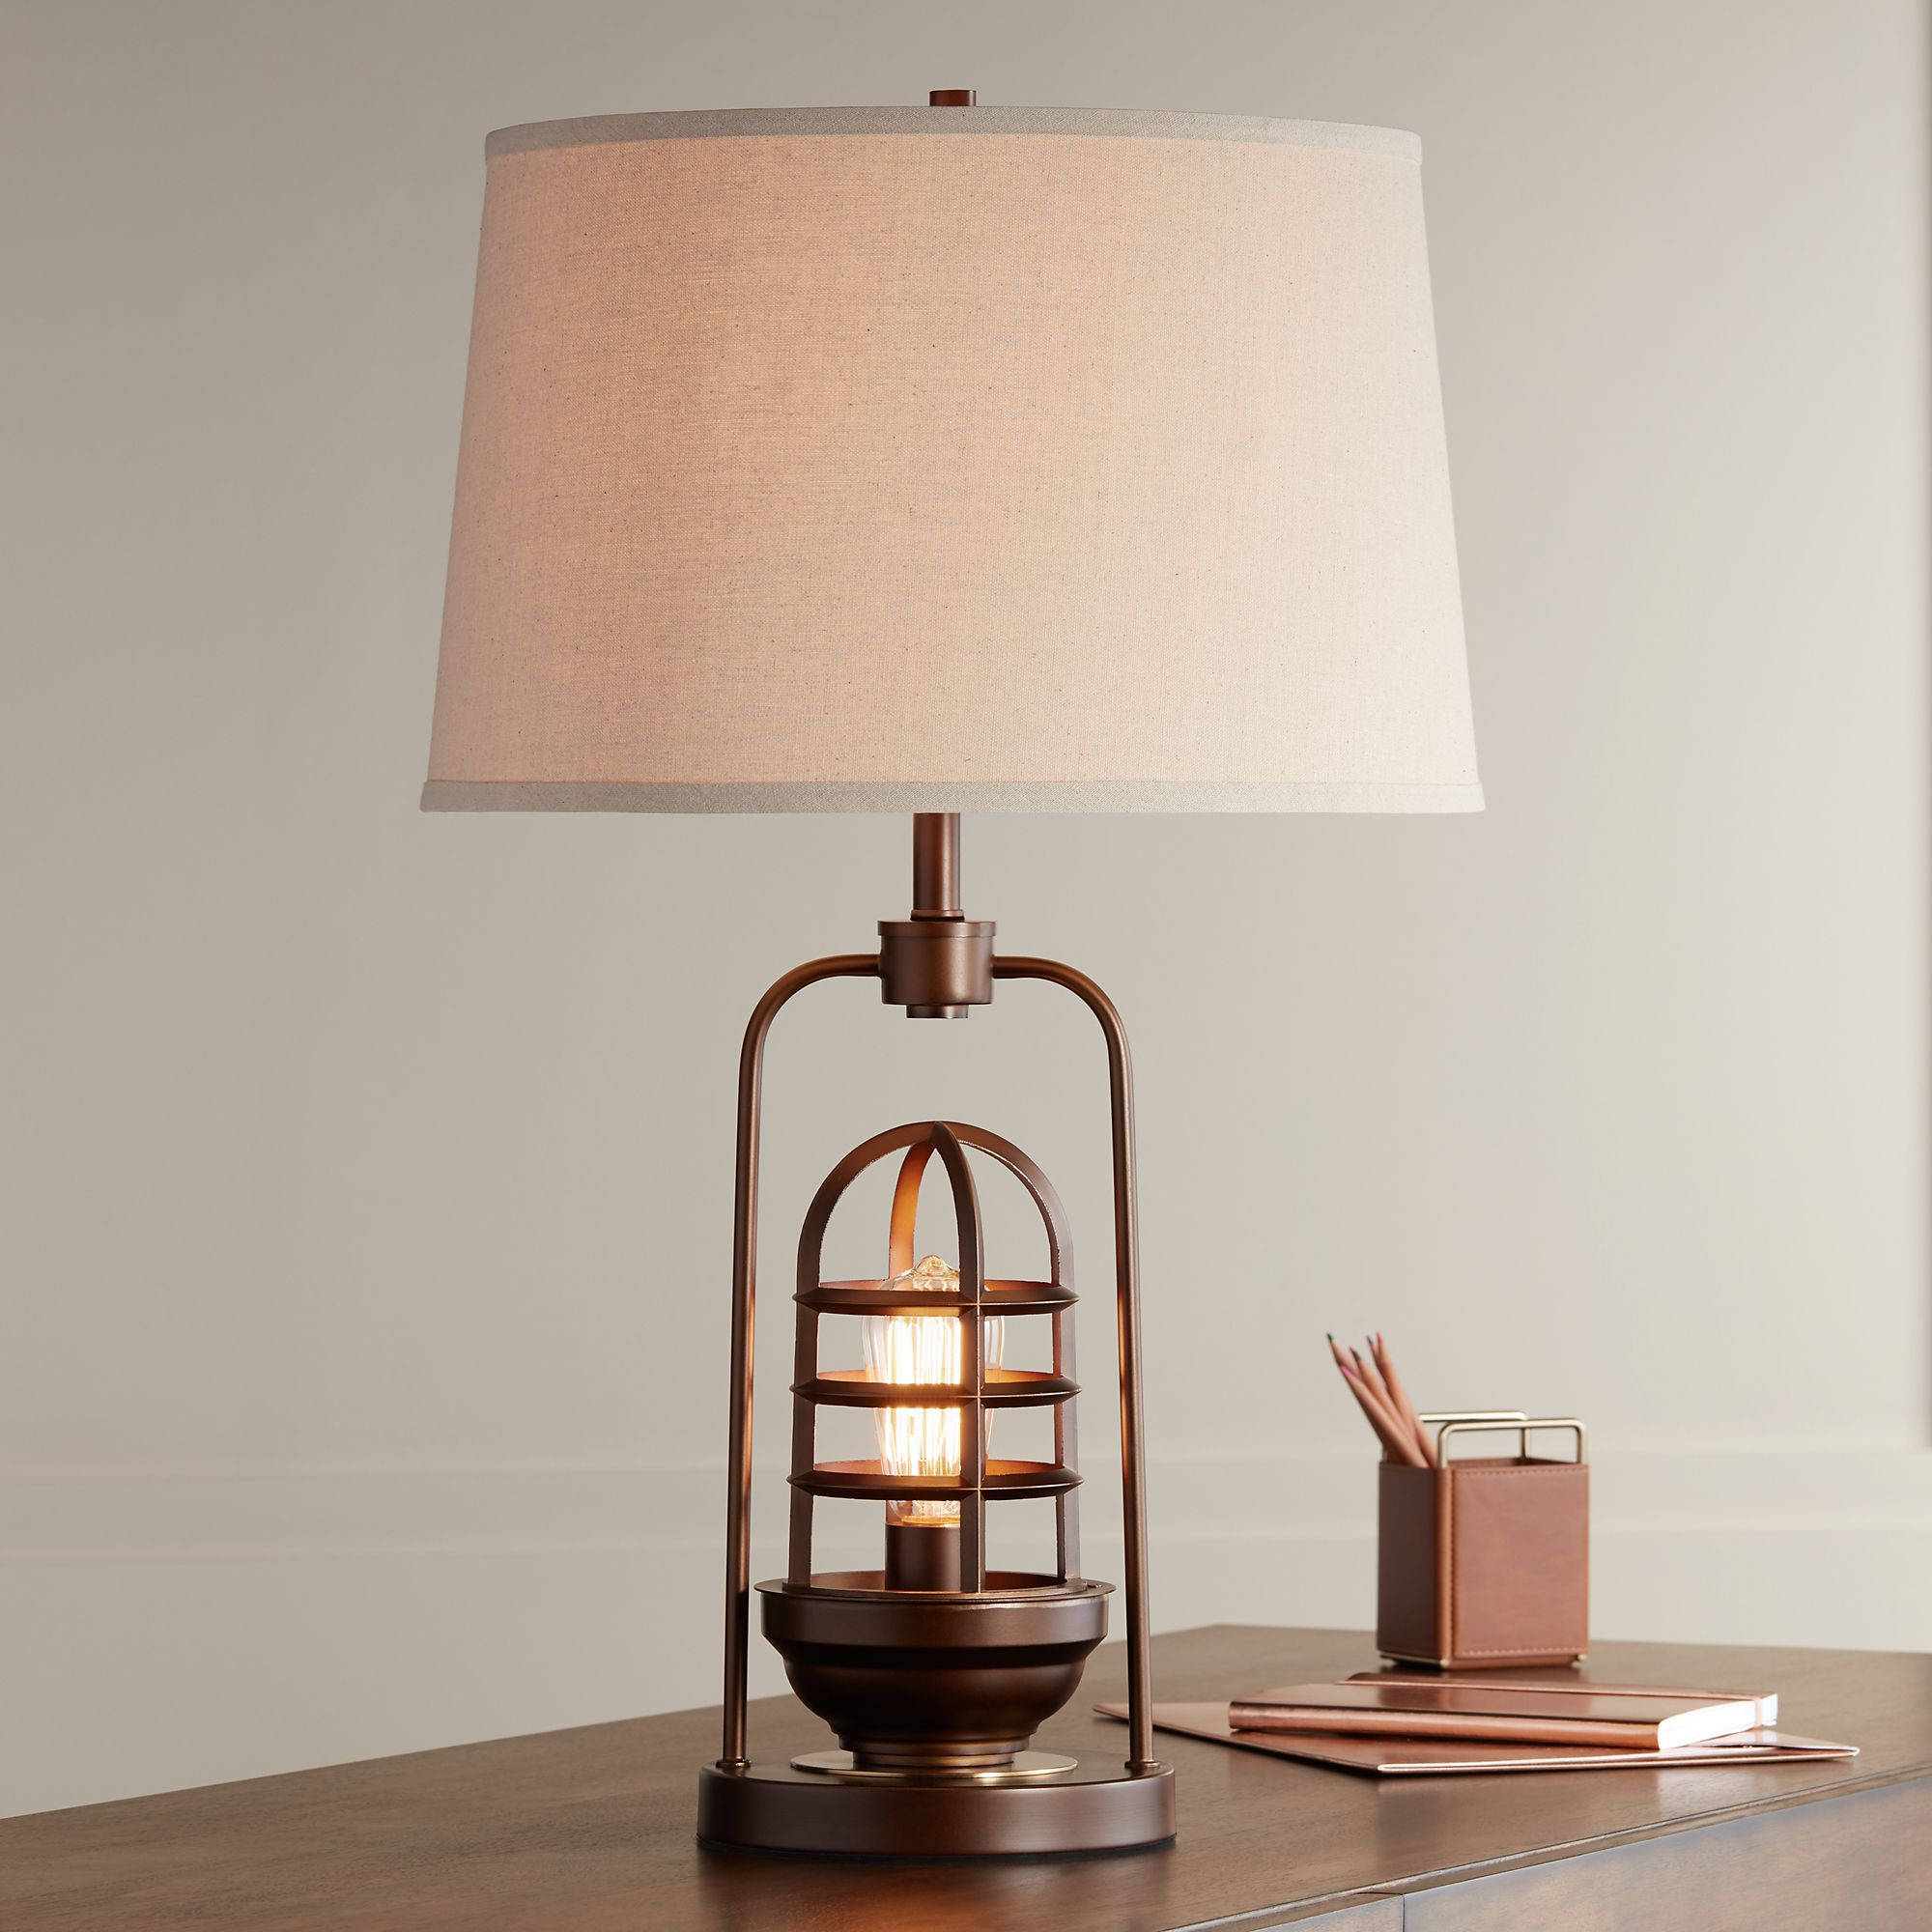 Franklin Iron Works Industrial Table Lamp With Nightlight LED Edison Bulb  Rust Bronze Cage Drum Shade For Living Room Family   Walmart.com